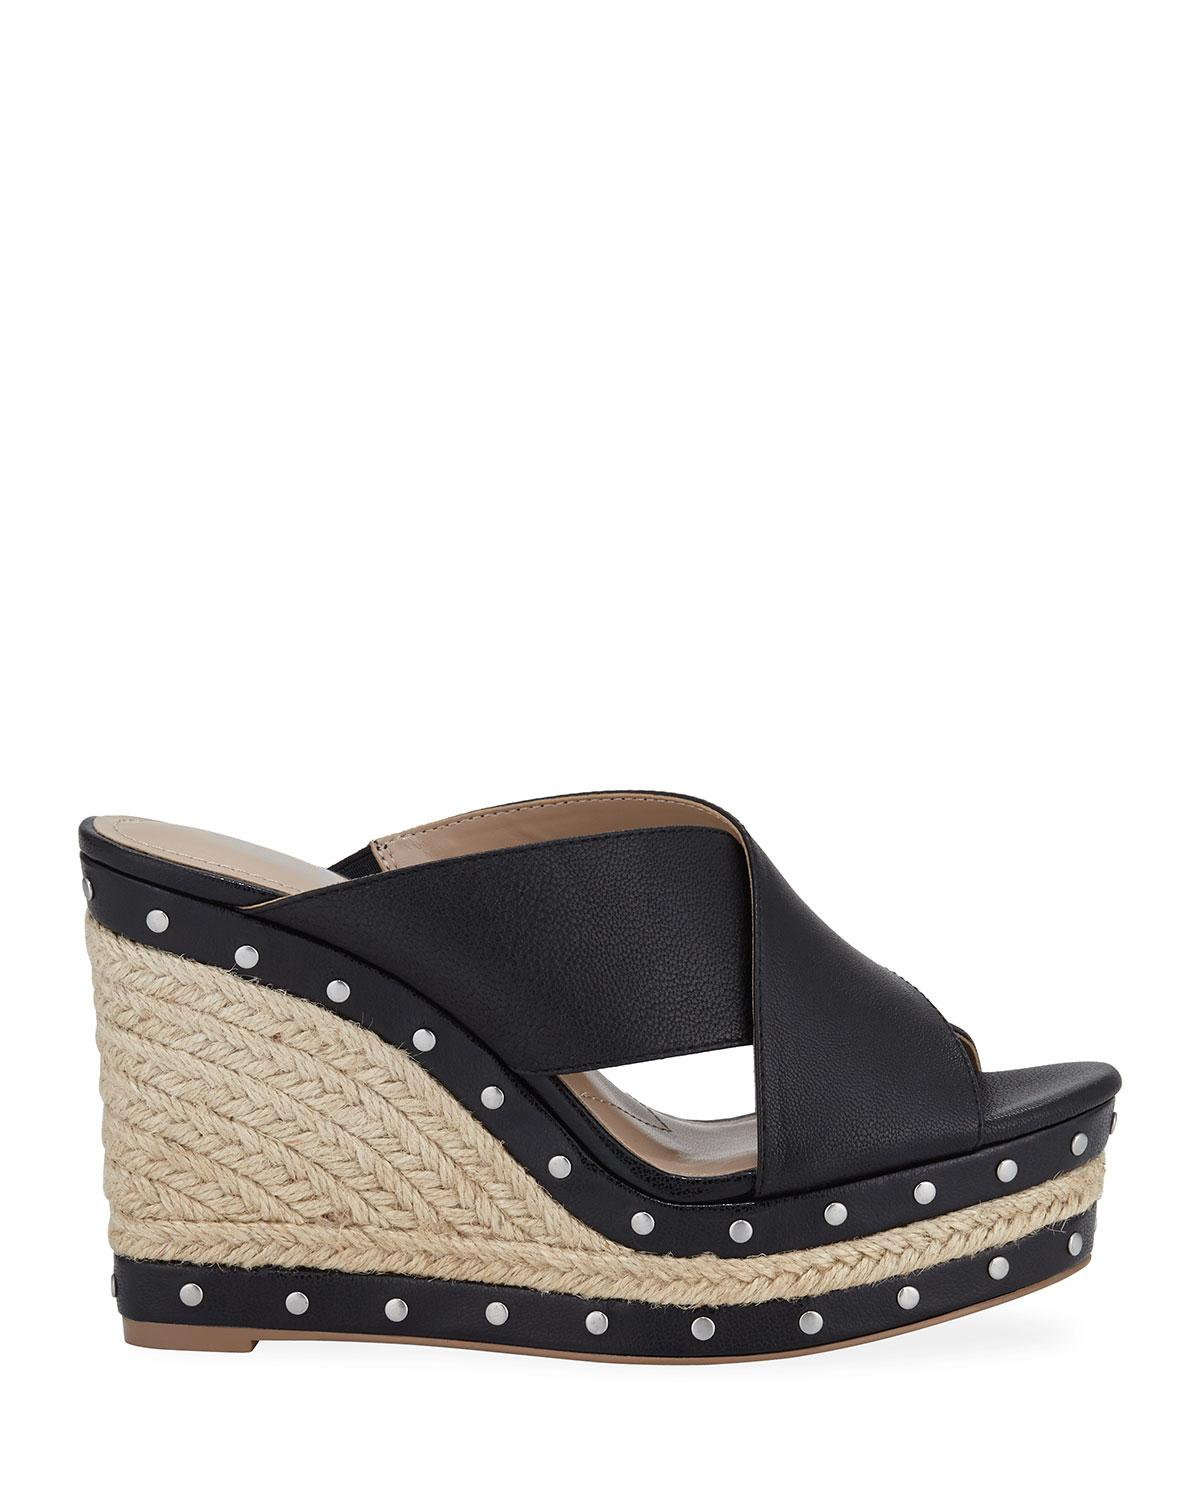 09720f814cae Lyst - Charles David Leilani Studded Espadrille Wedge Sandals in Black -  Save 48%